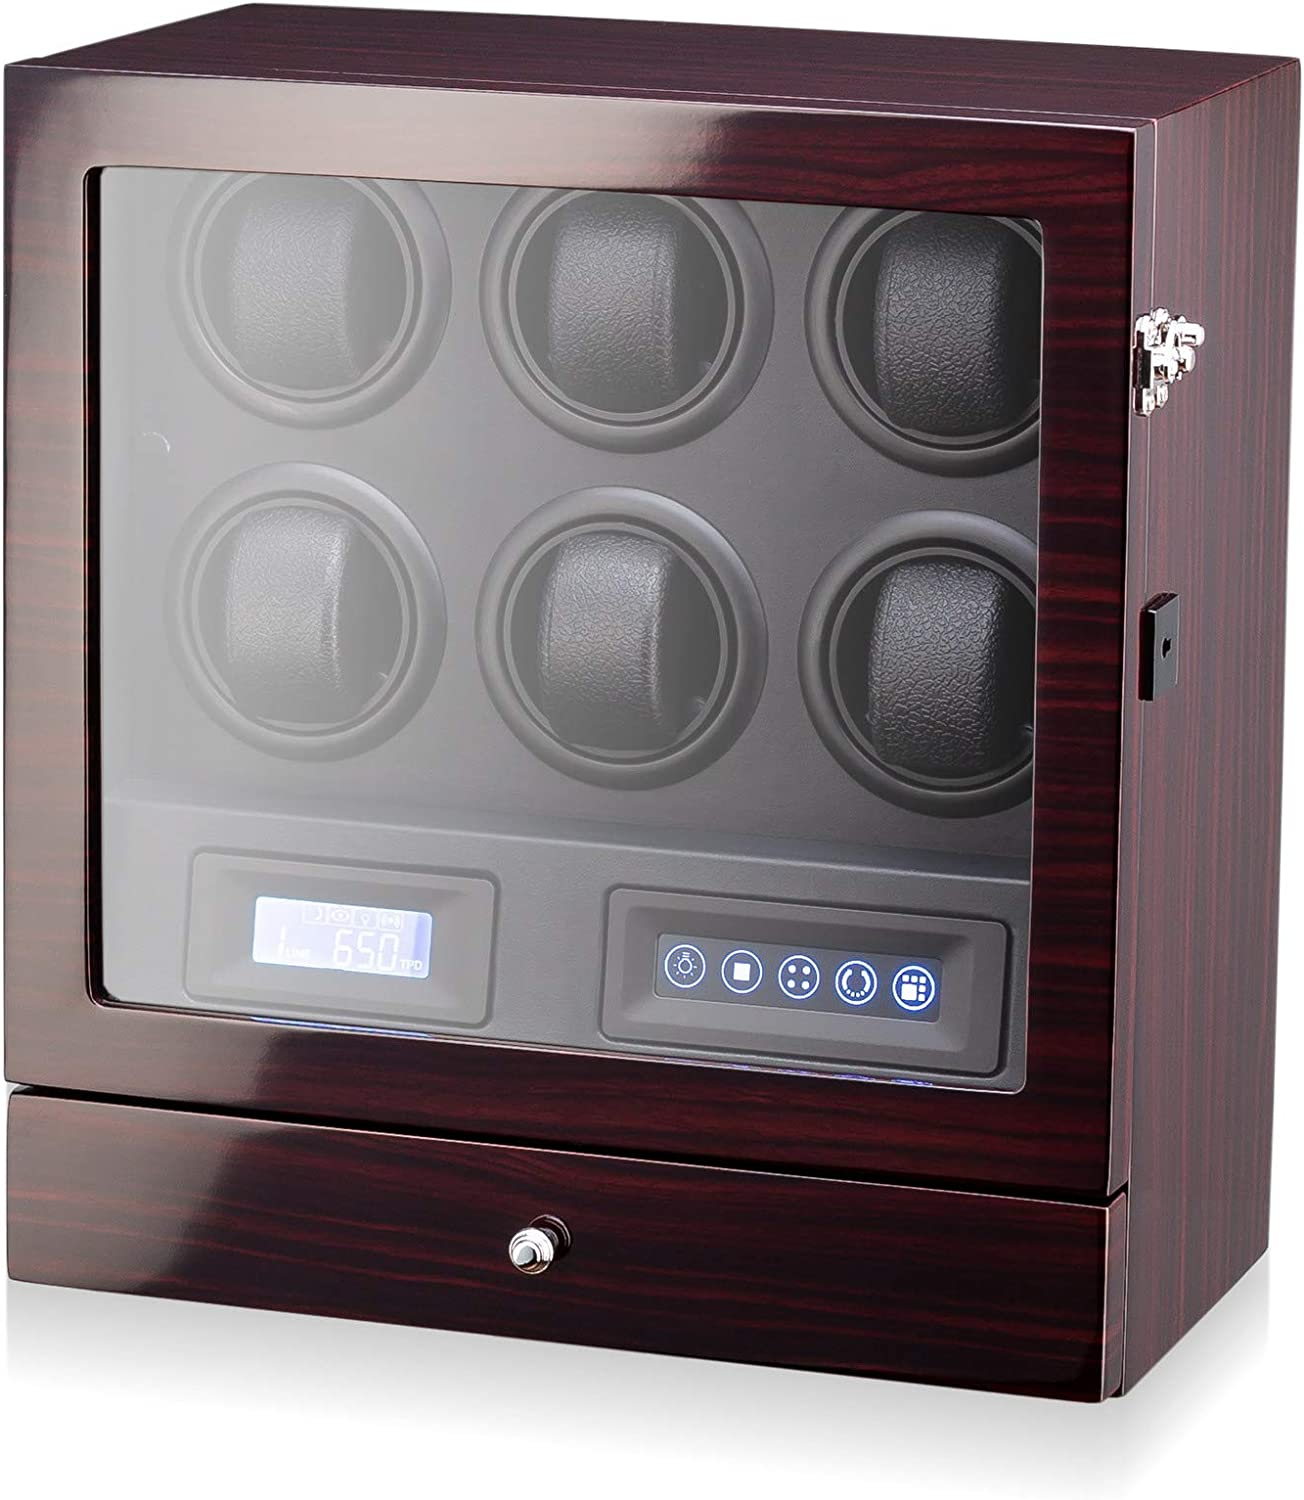 Watch Winder for 6 Watches with Ba LED 2 Award-winning store Super sale Drawer Storage